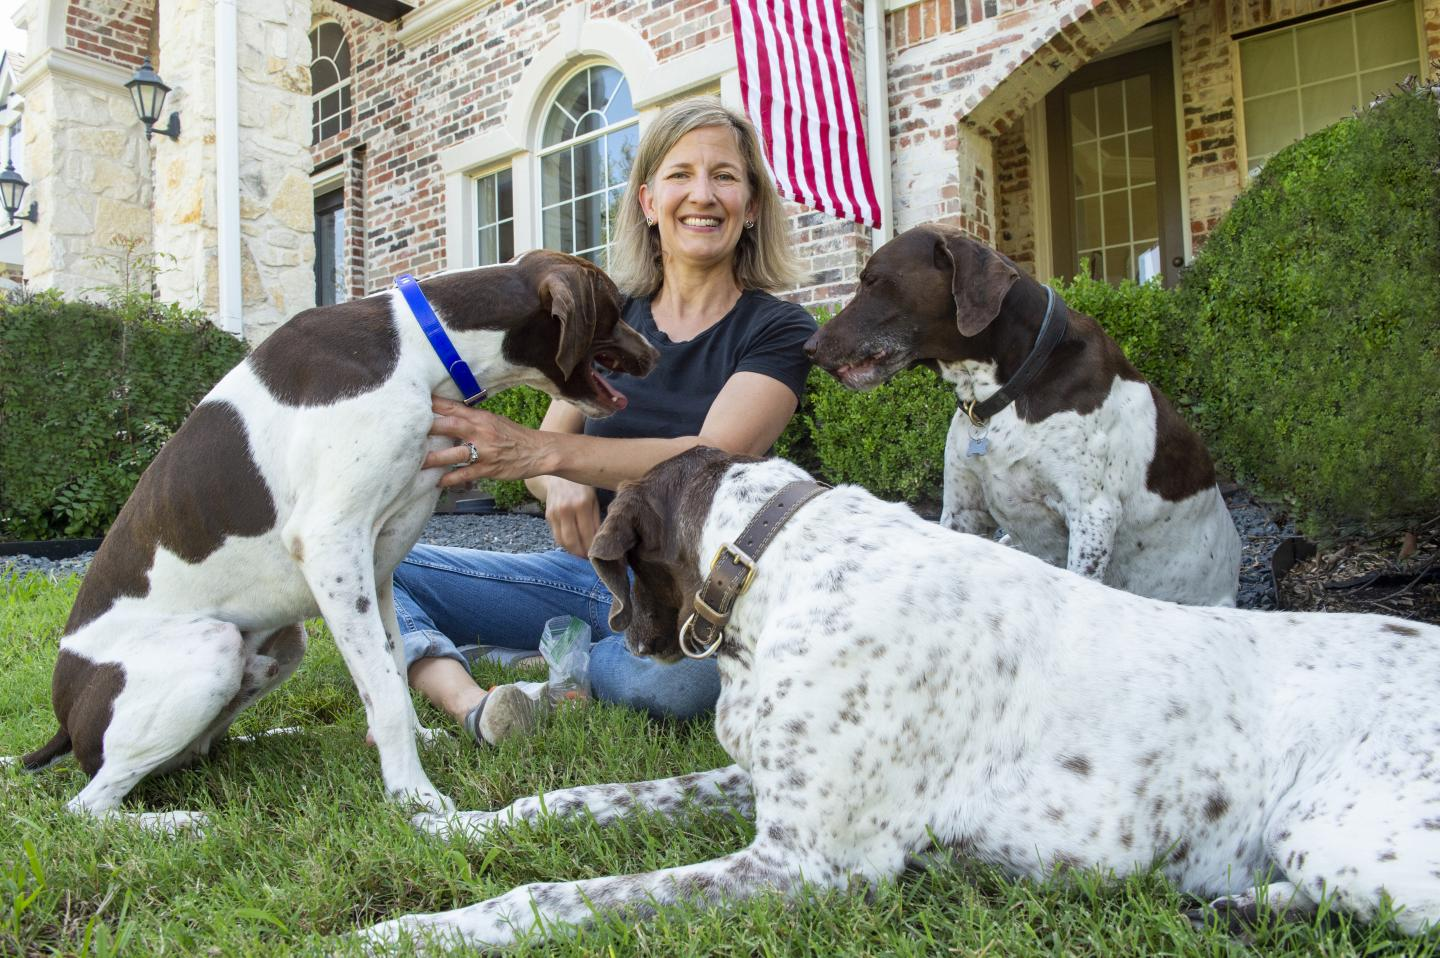 SMU sociologist Andrea Laurent-Simpson defines the multispecies American family in her new book.